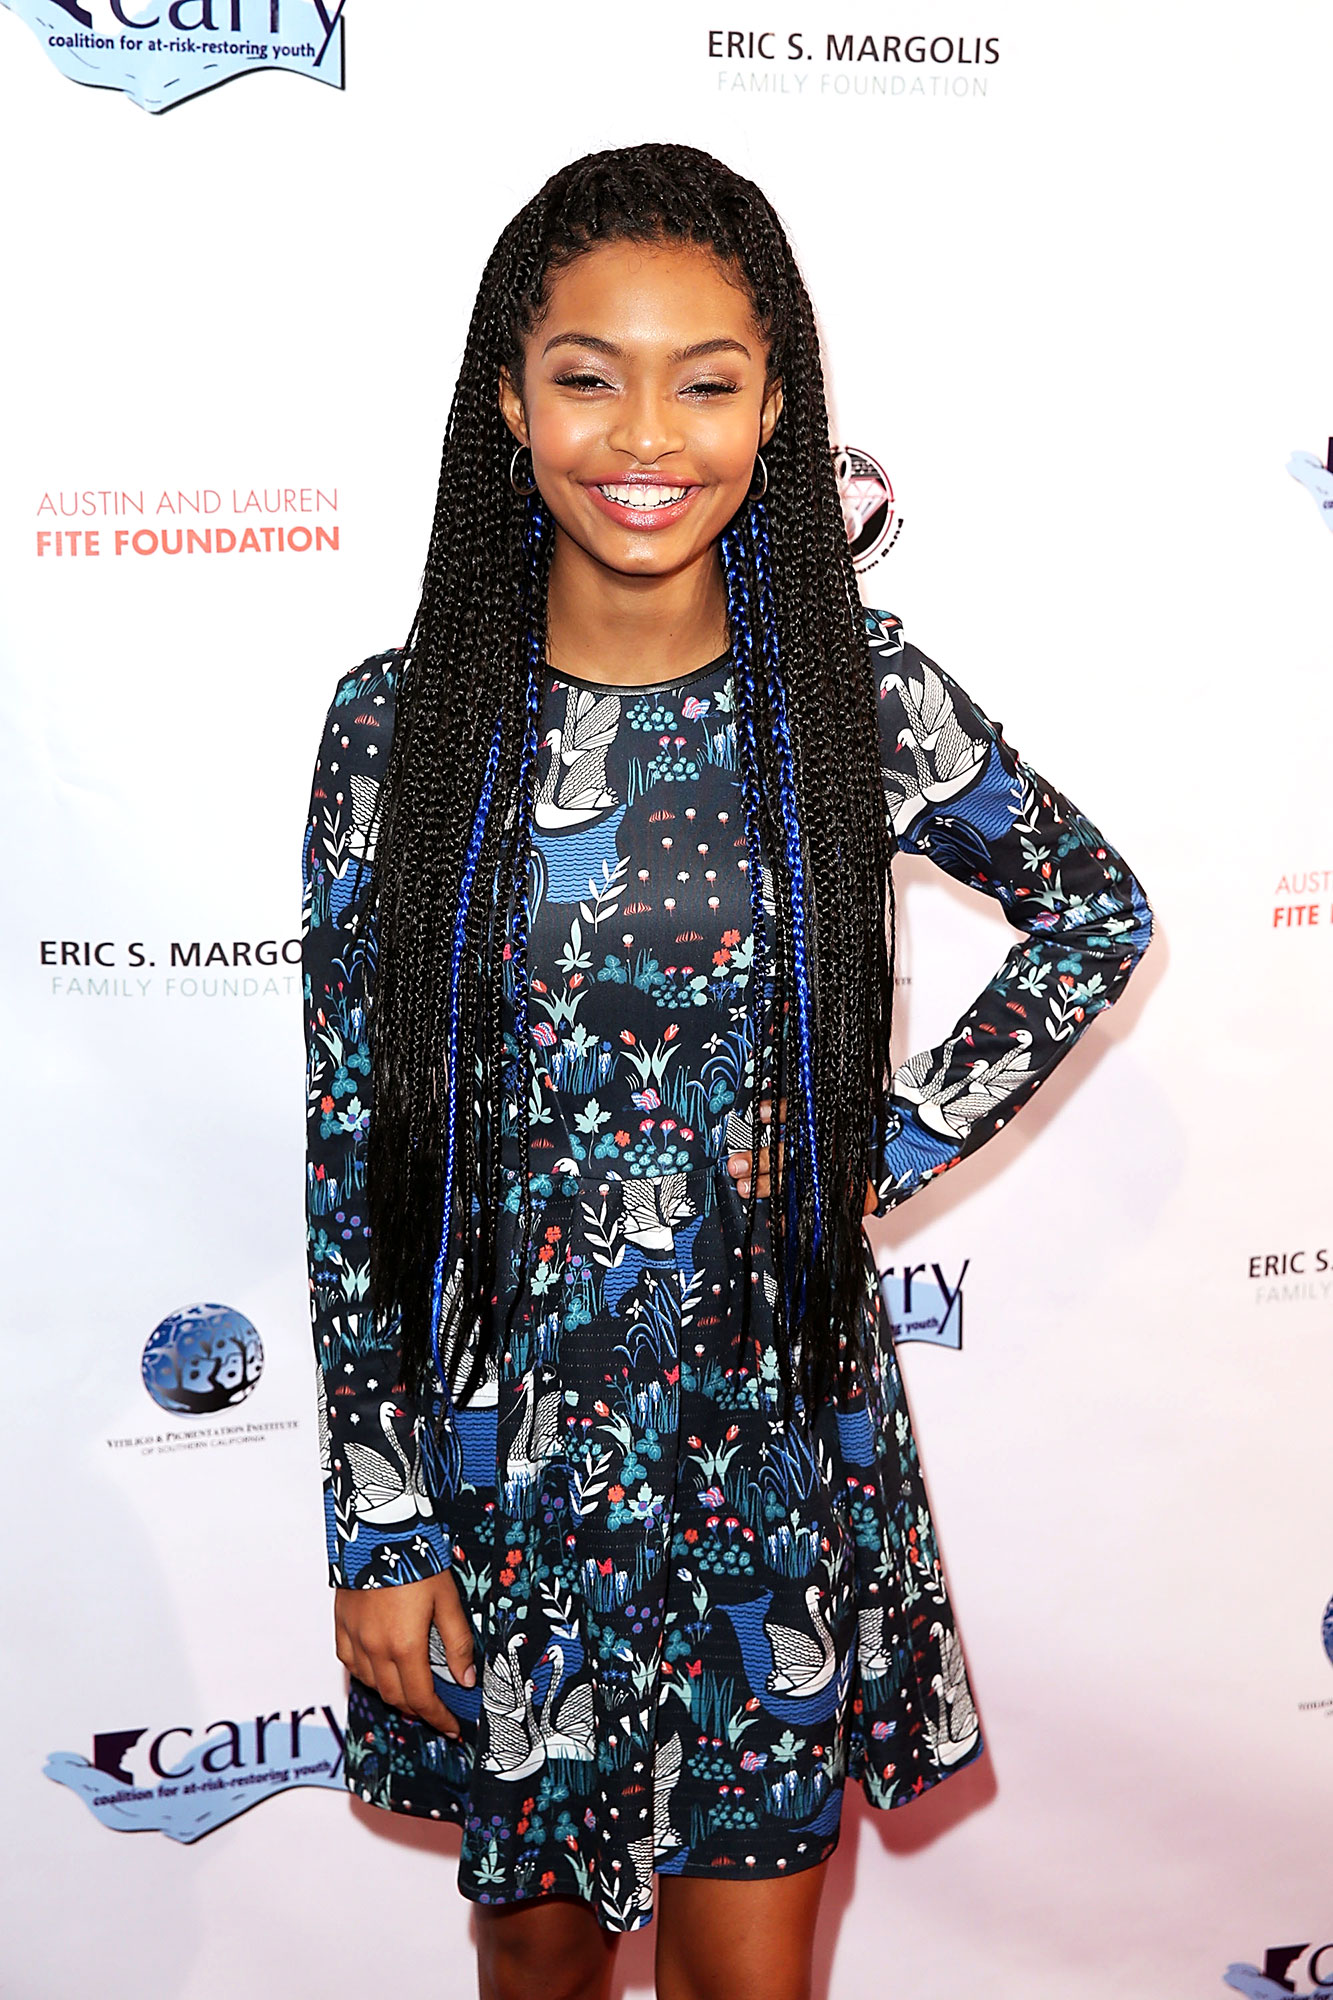 Yara Shahidi - The only thing better than the waist-grazing braids the Grown-ish star rocked back in 2015? The pops of blue she wove into them.